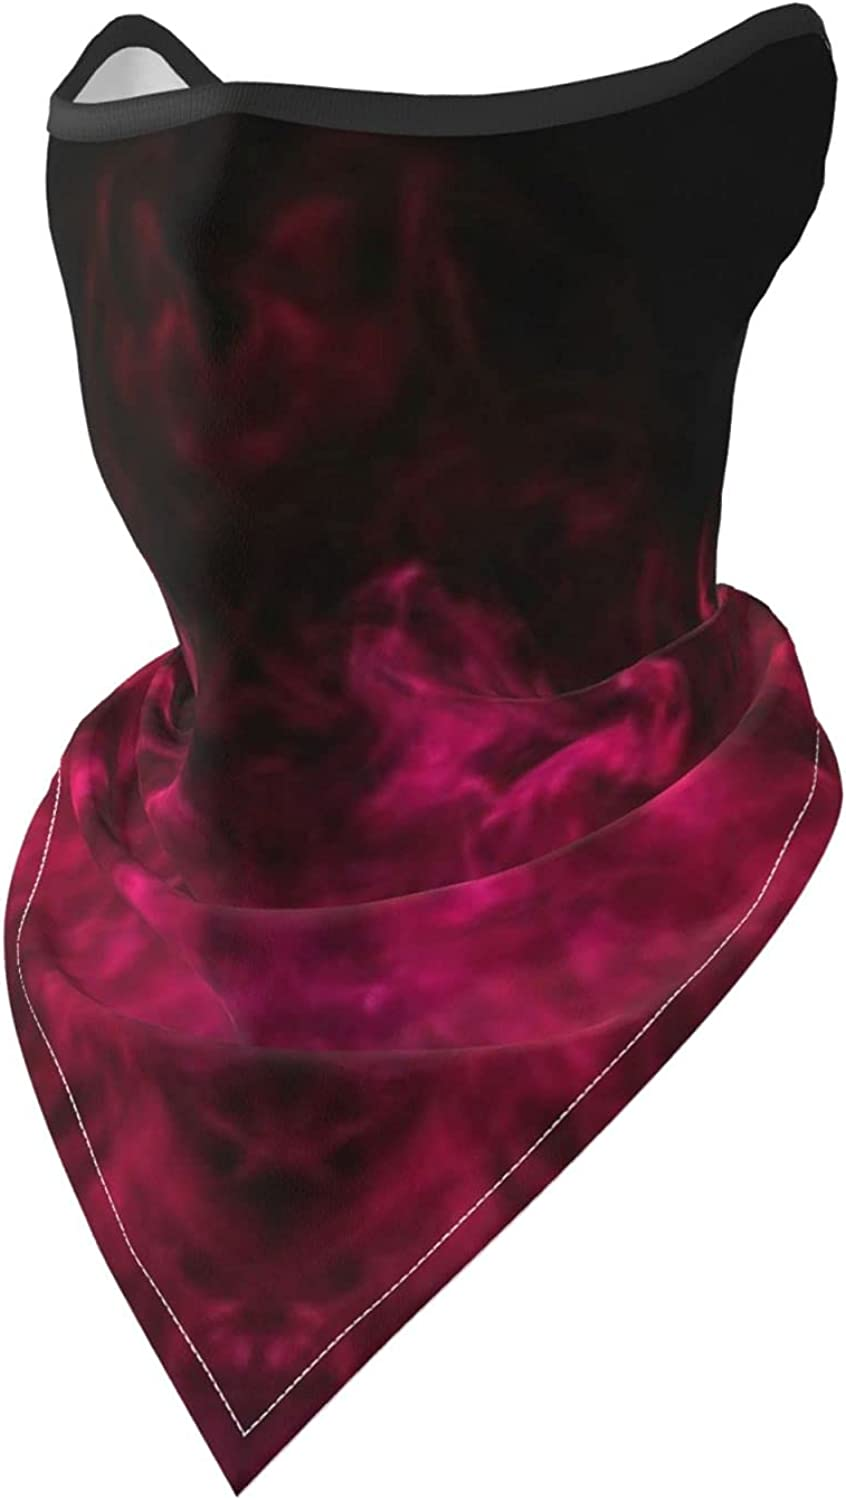 Red Colors Smoke and Skull Monster Breathable Bandana Face Mask Neck Gaiter Windproof Sports Mask Scarf Headwear for Men Women Outdoor Hiking Cycling Running Motorcycling